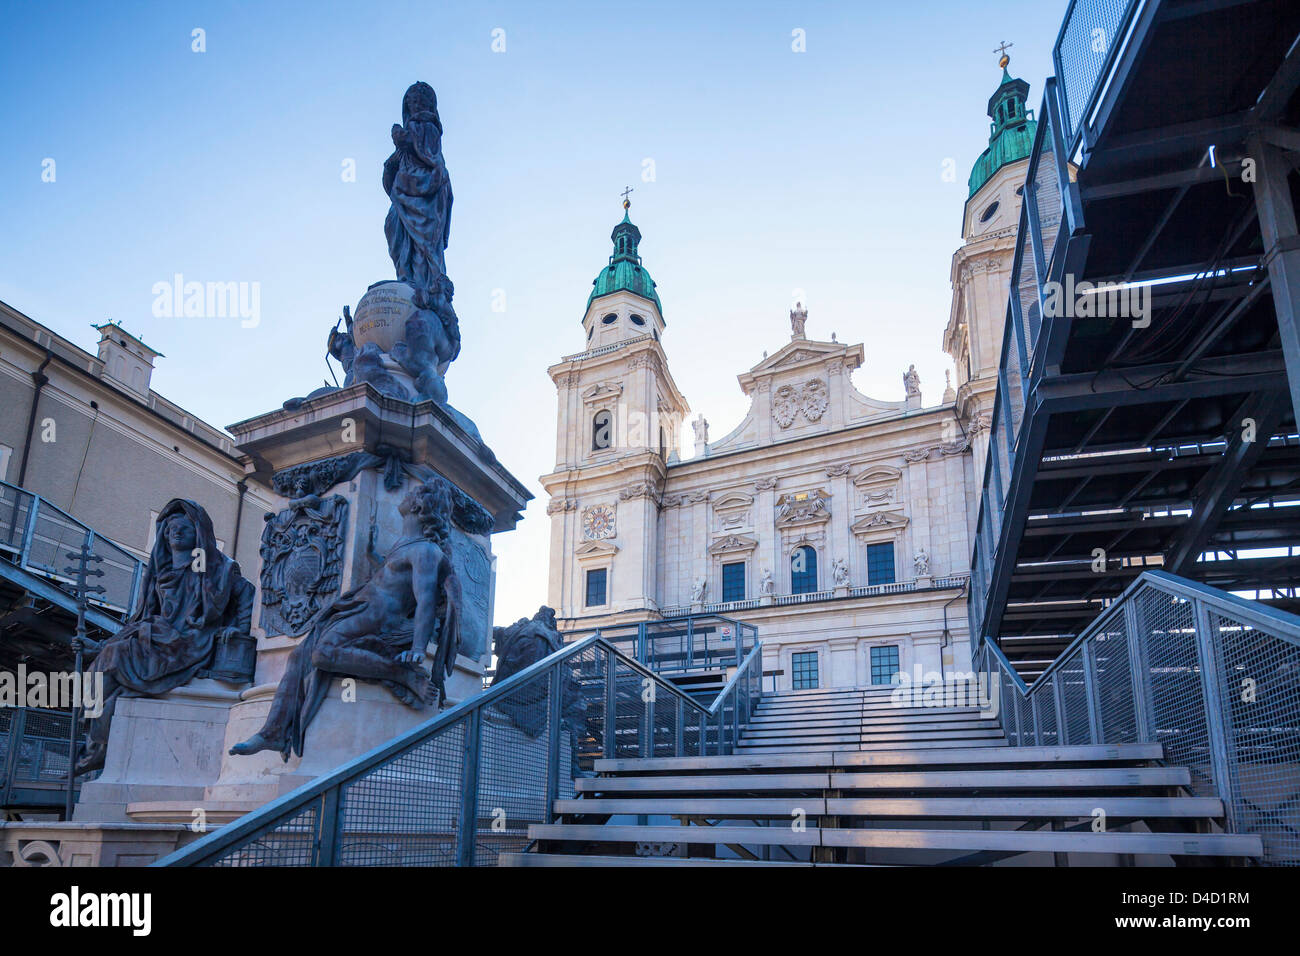 Stage at the Dome square during the Salzburg Festival, Austria - Stock Image